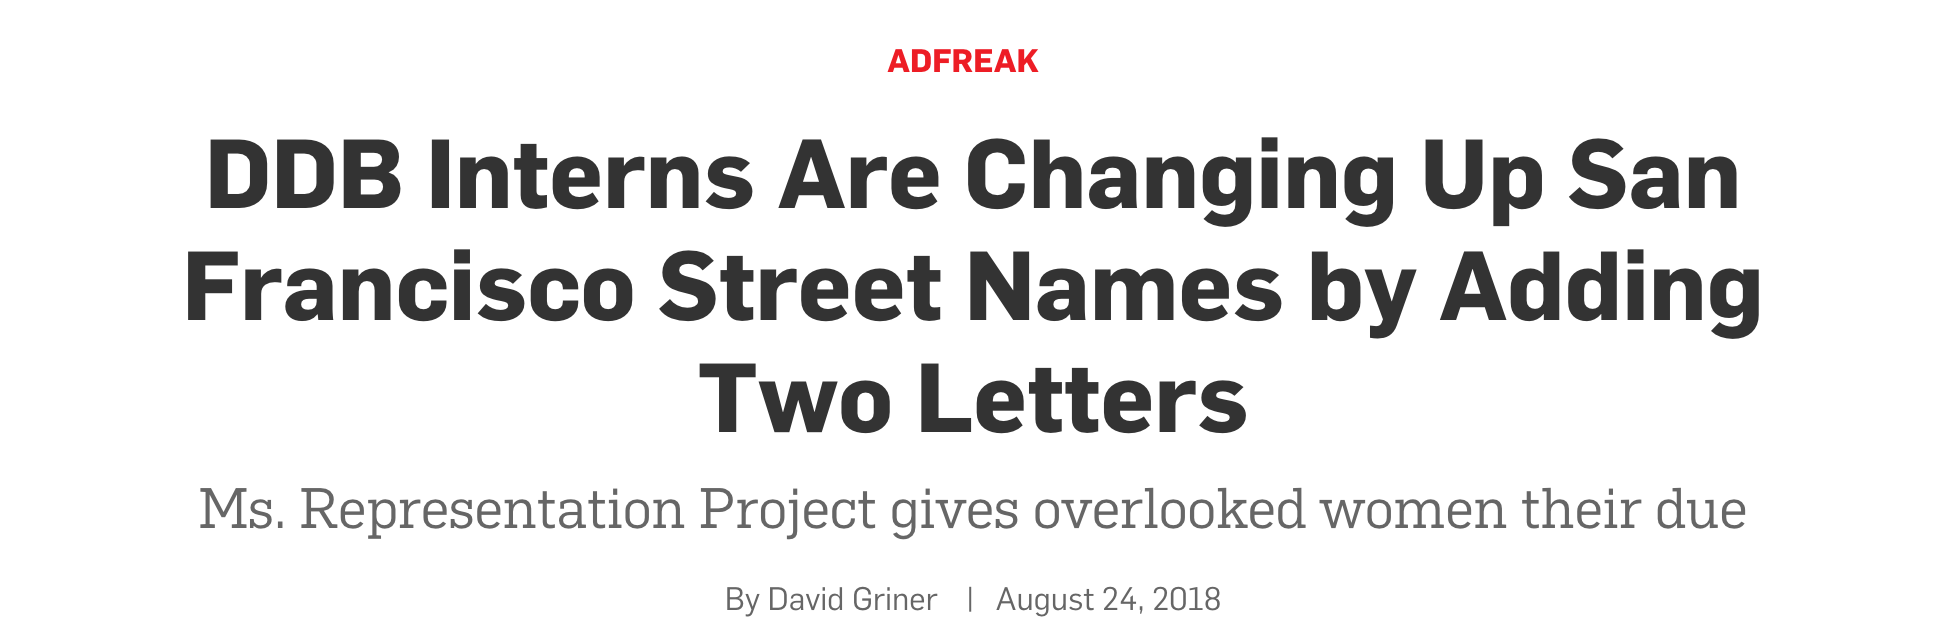 screencapture-adweek-creativity-ddb-interns-are-changing-up-san-francisco-street-names-by-adding-two-letters-2018-09-21-17_35_29.png